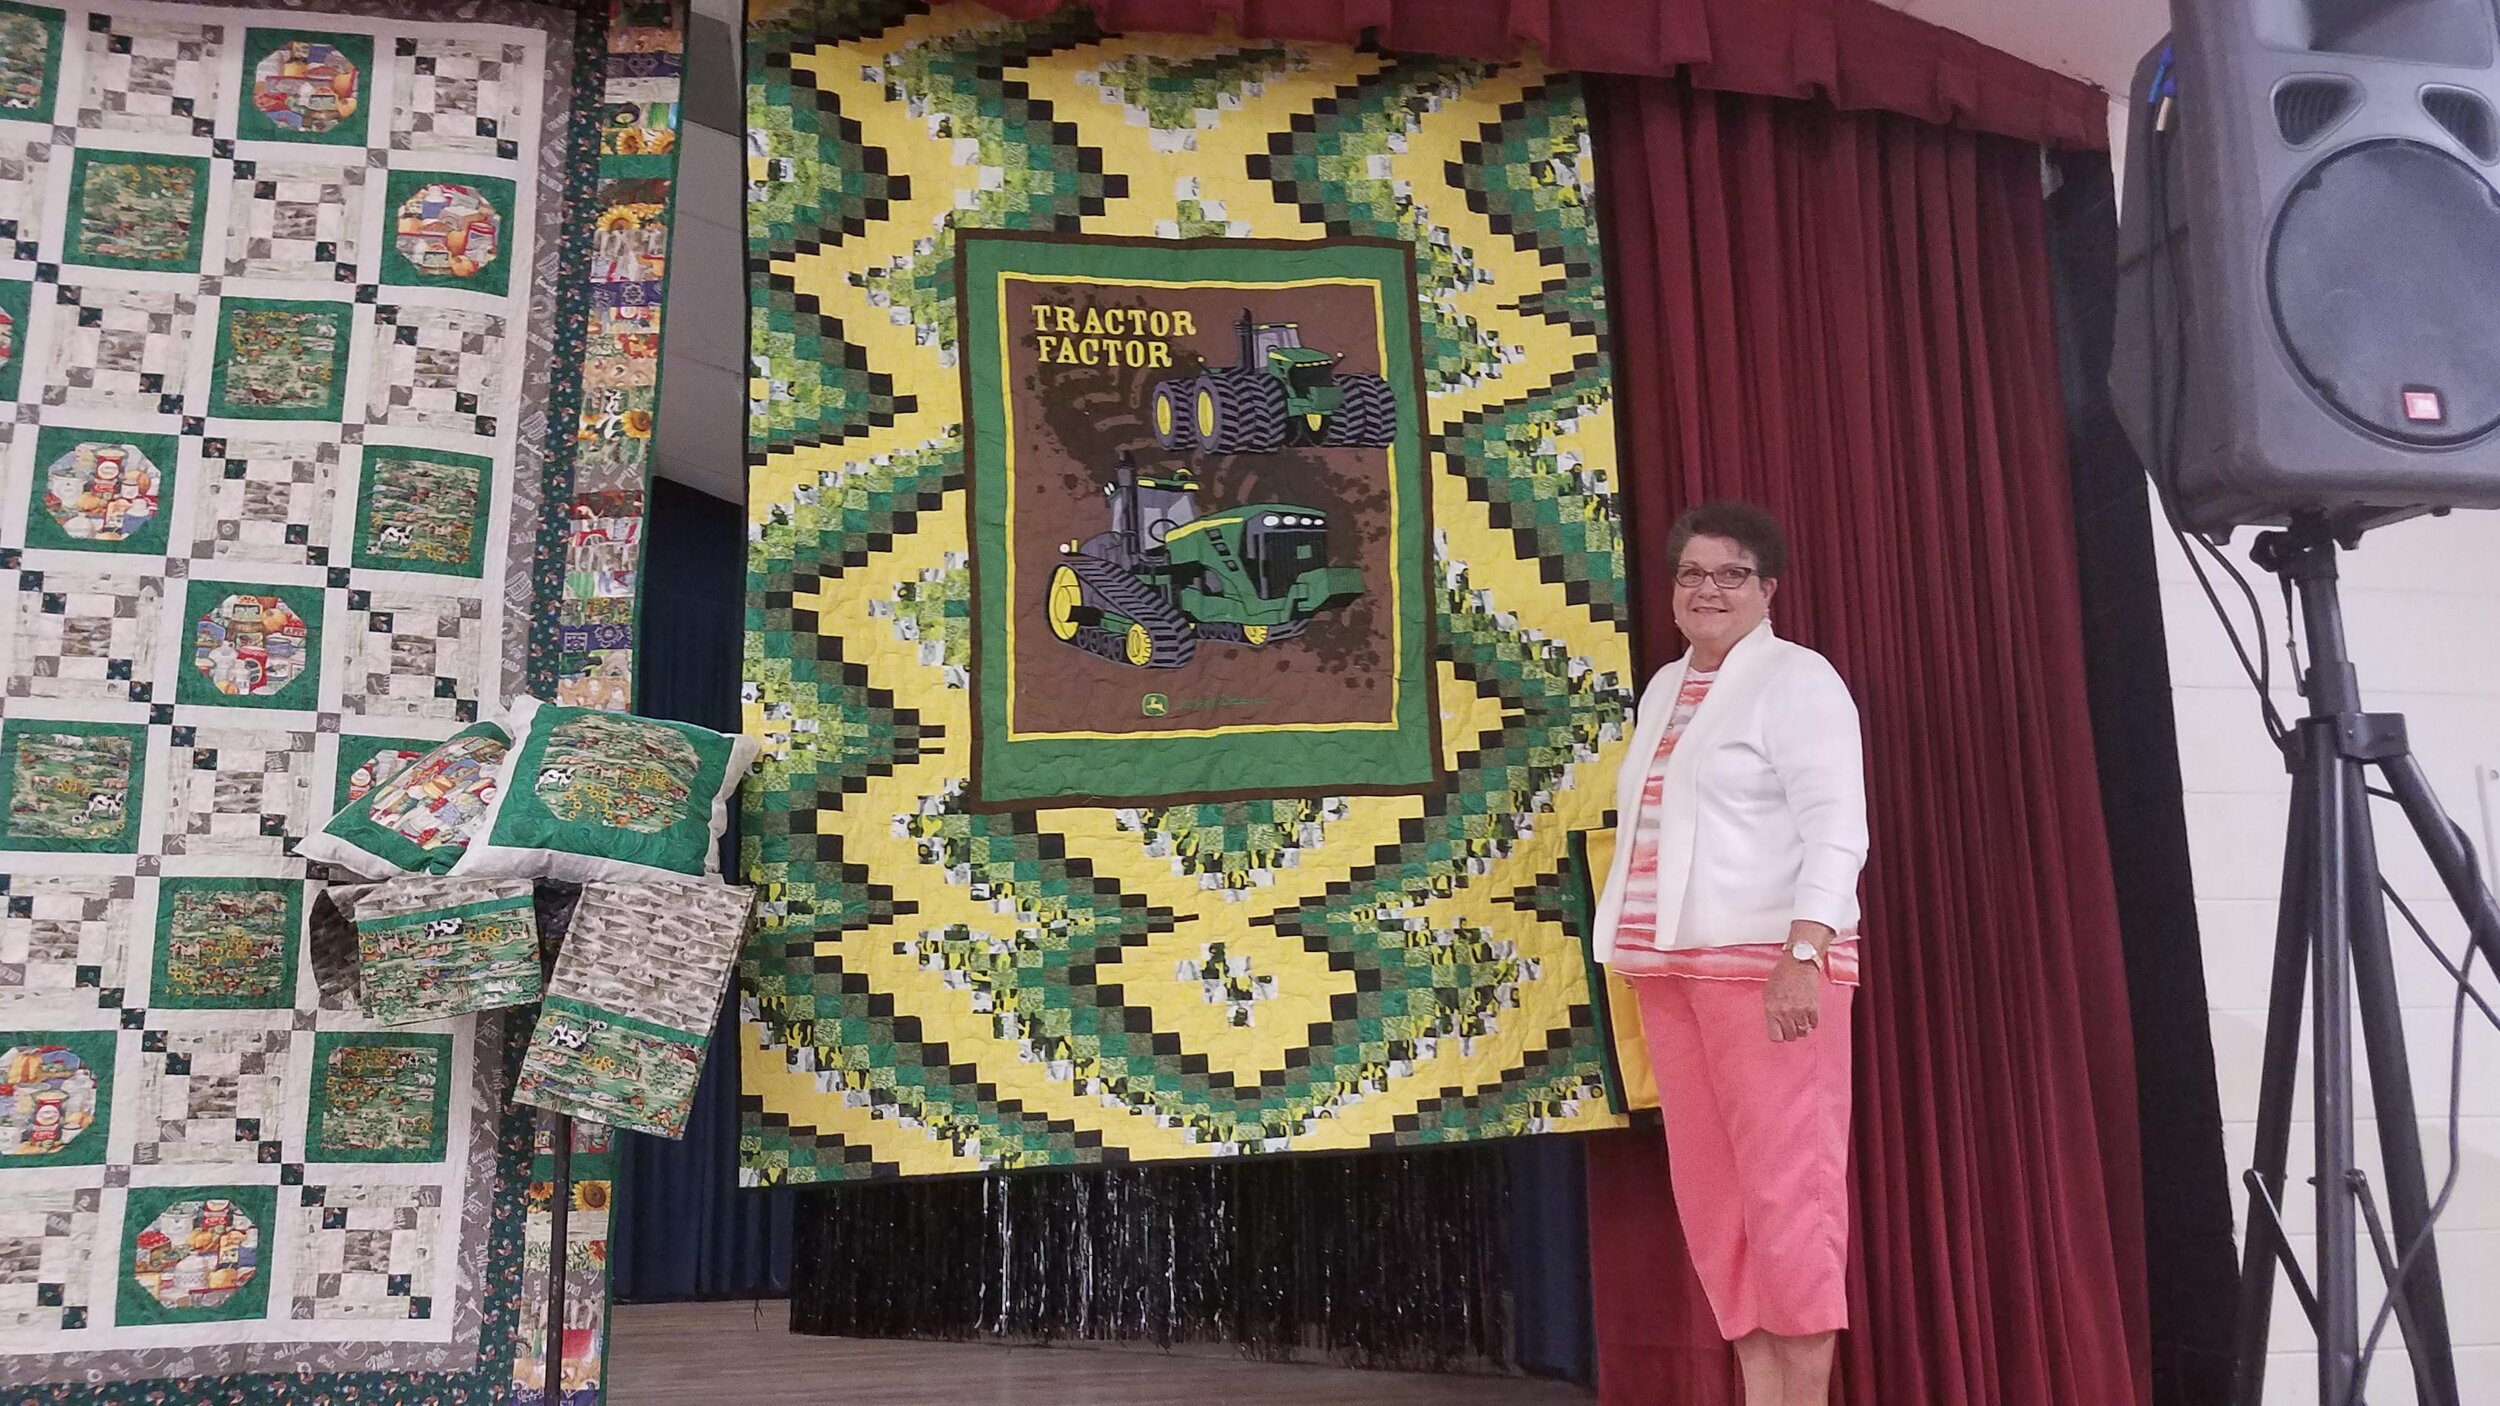 Christie Gaskin won the twin sized quilt!